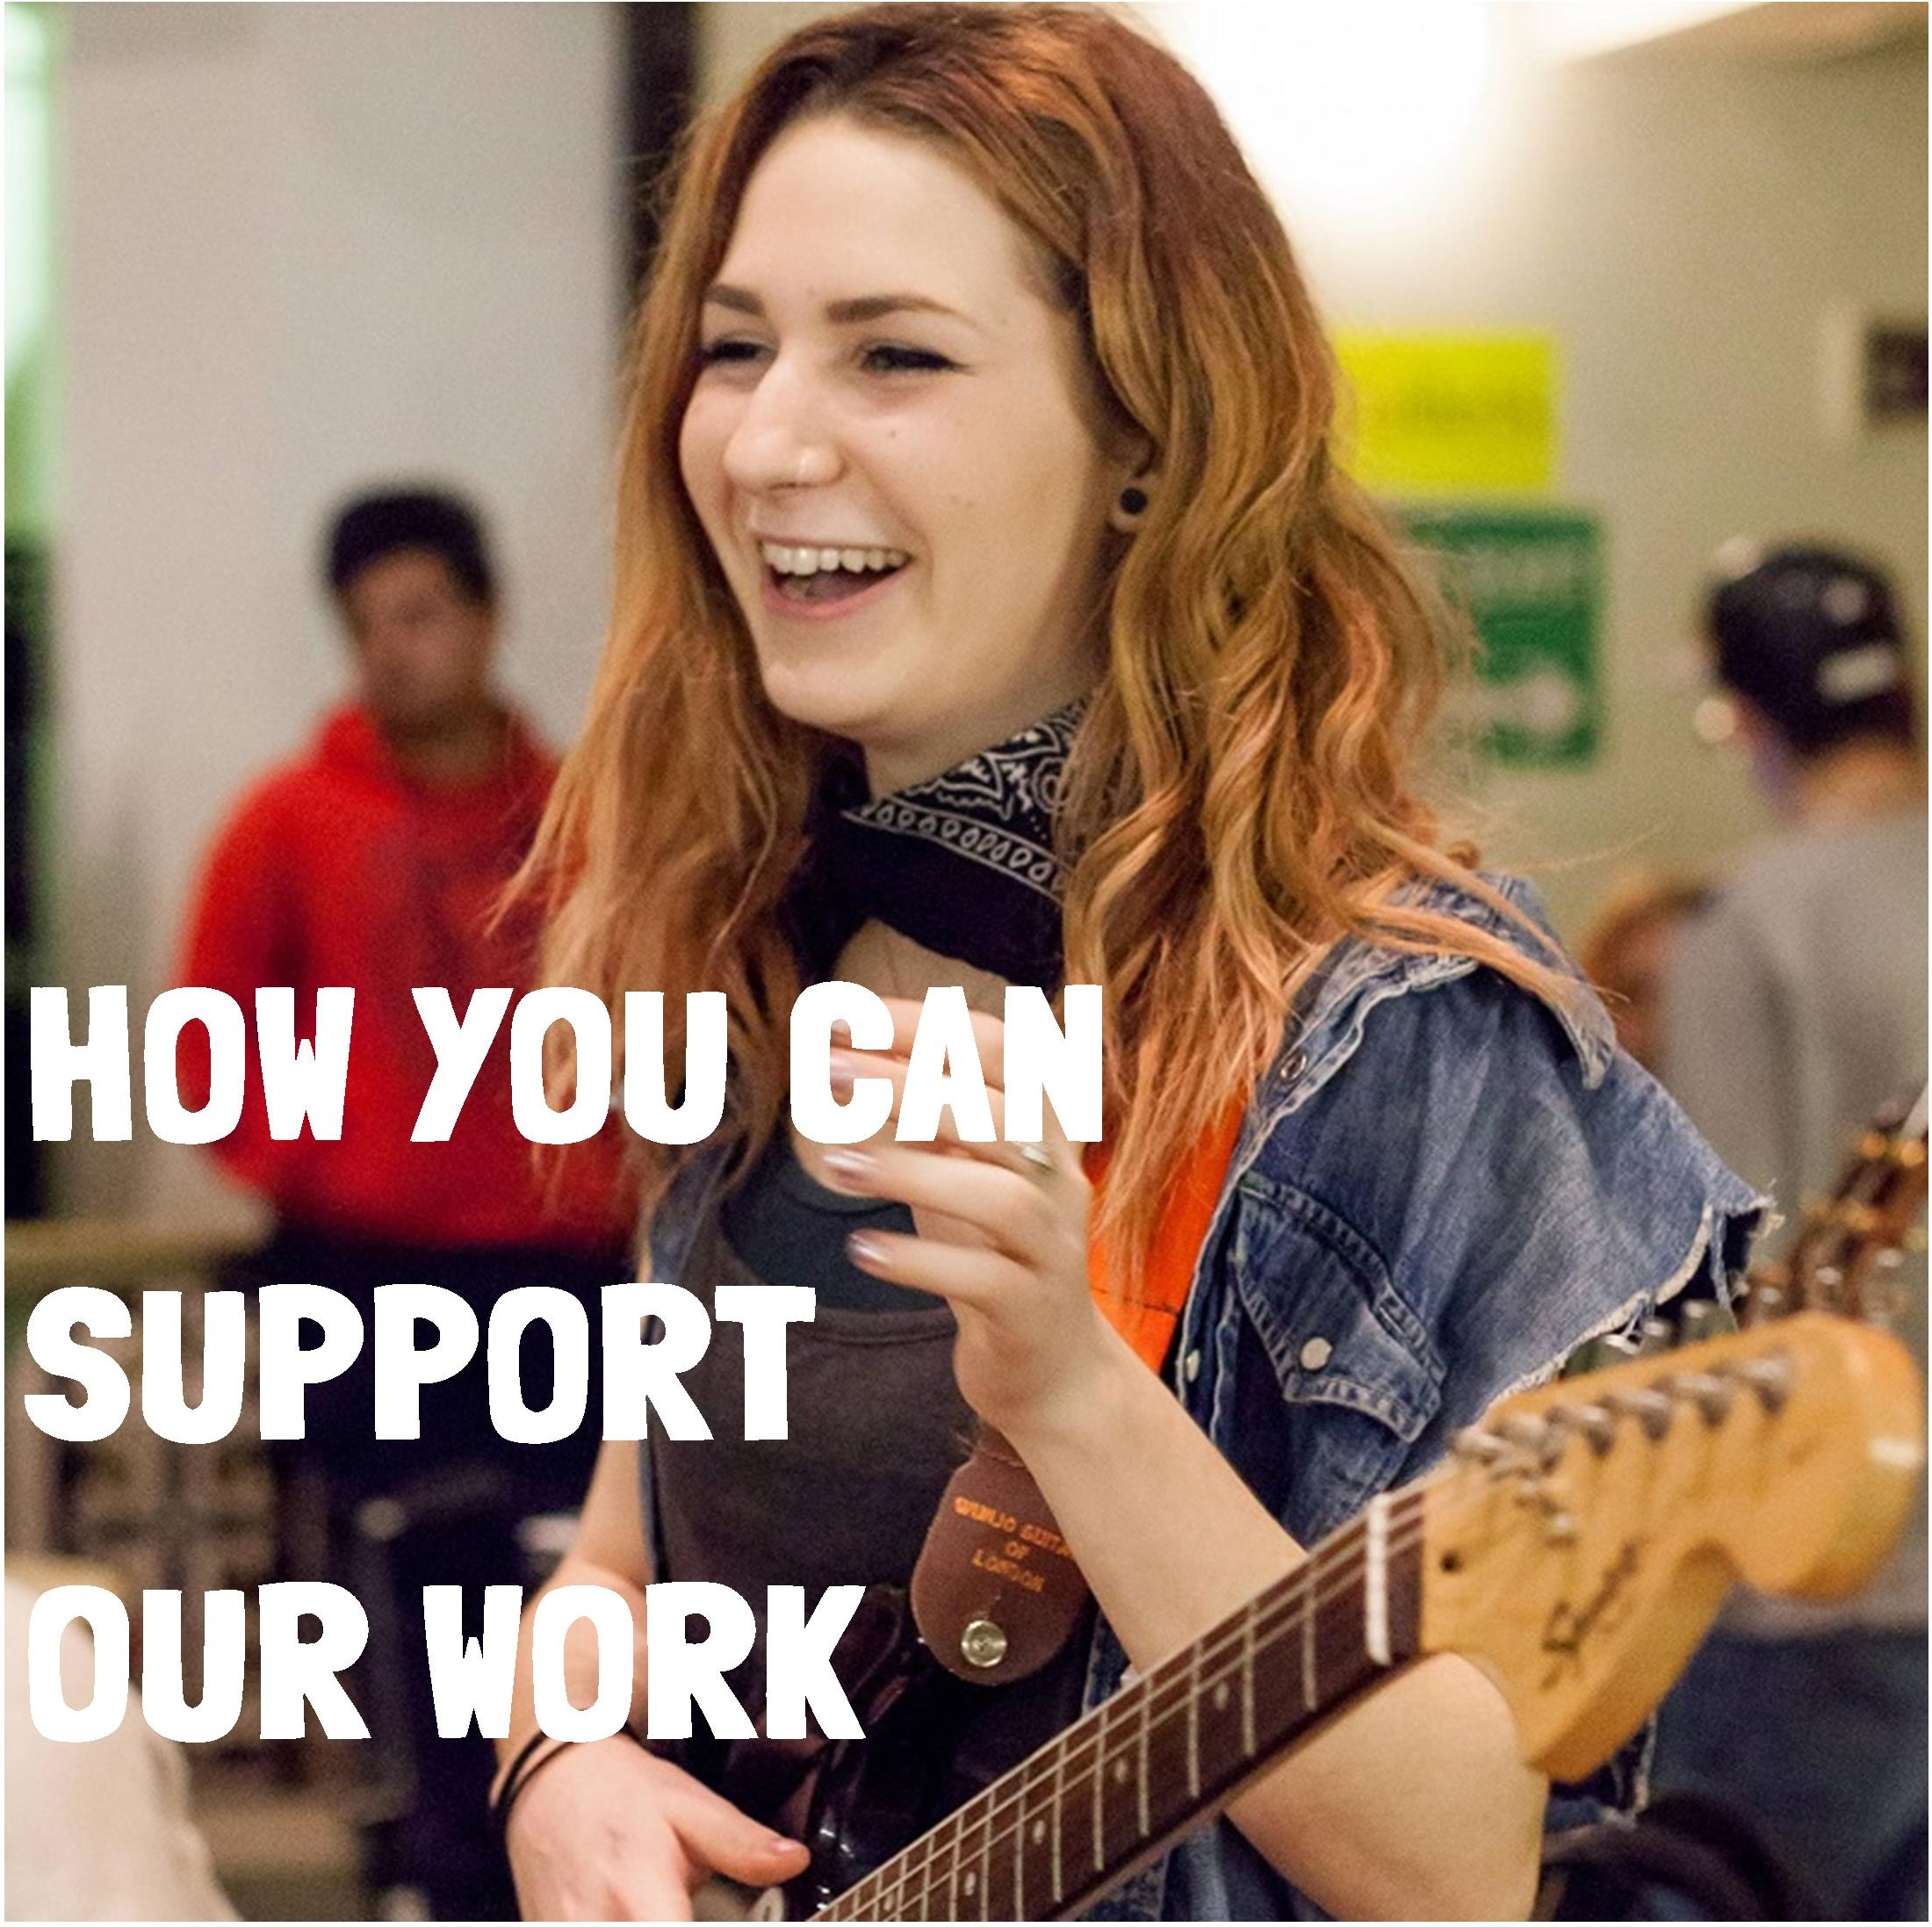 How you can support our work